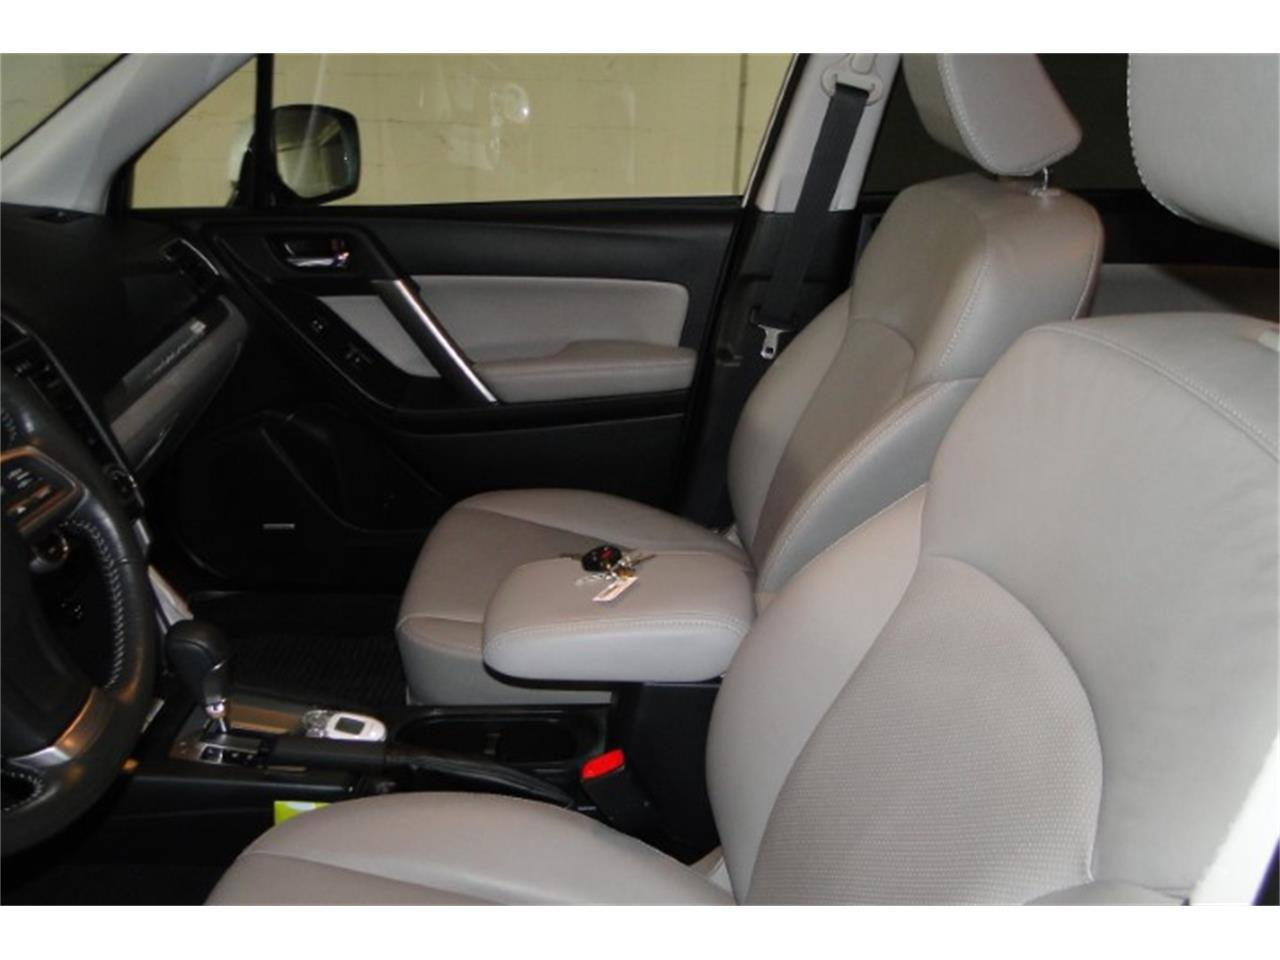 Large Picture of '16 Subaru Forester located in Prior Lake Minnesota - $23,900.00 - O7AC